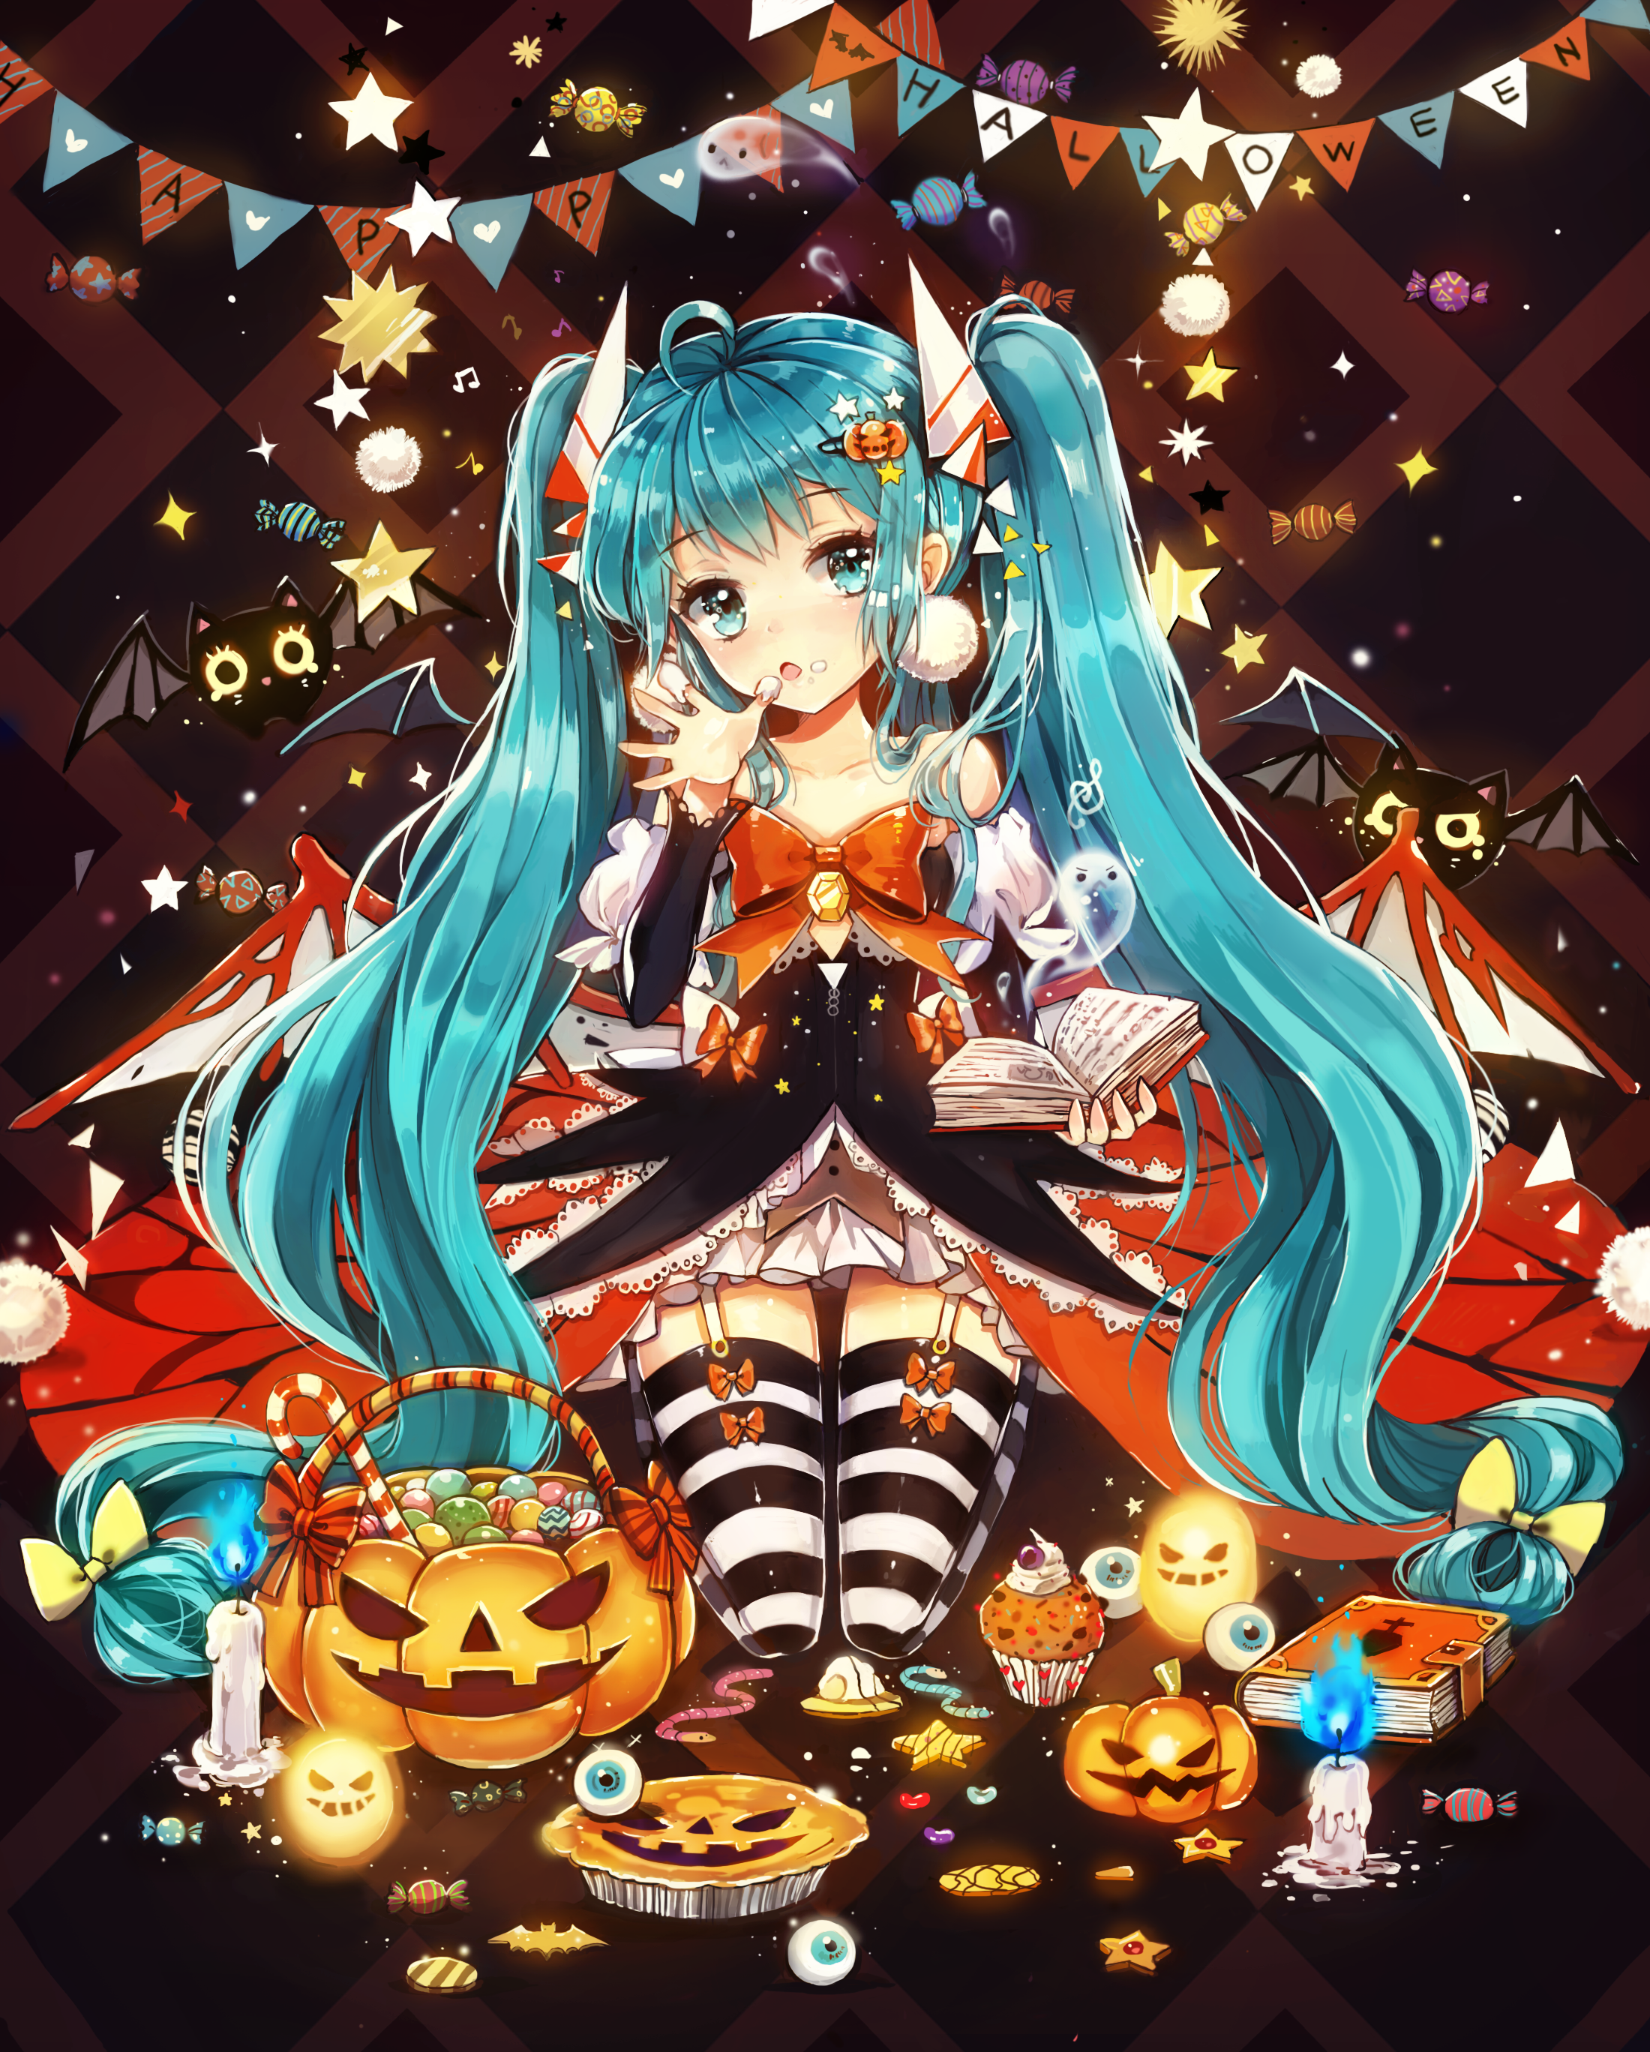 Halloween Miku ☆ | Anime | Pinterest | Hatsune miku, Vocaloid and ...